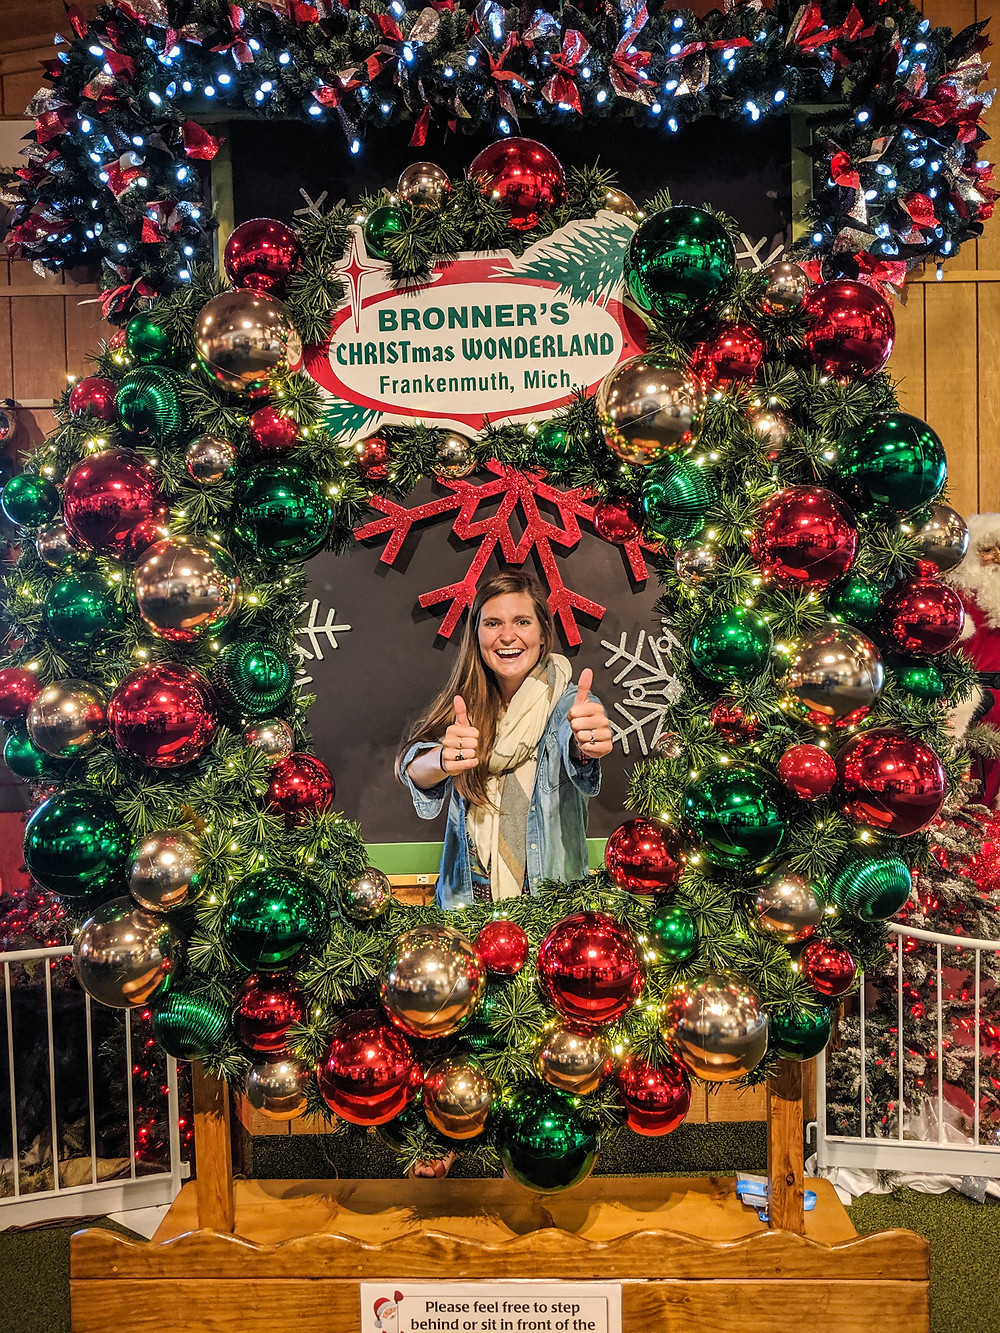 Steph from the Each Day Slow blog at Bronner's, the World's Largest Christmas Store in Frankenmuth, Michigan.